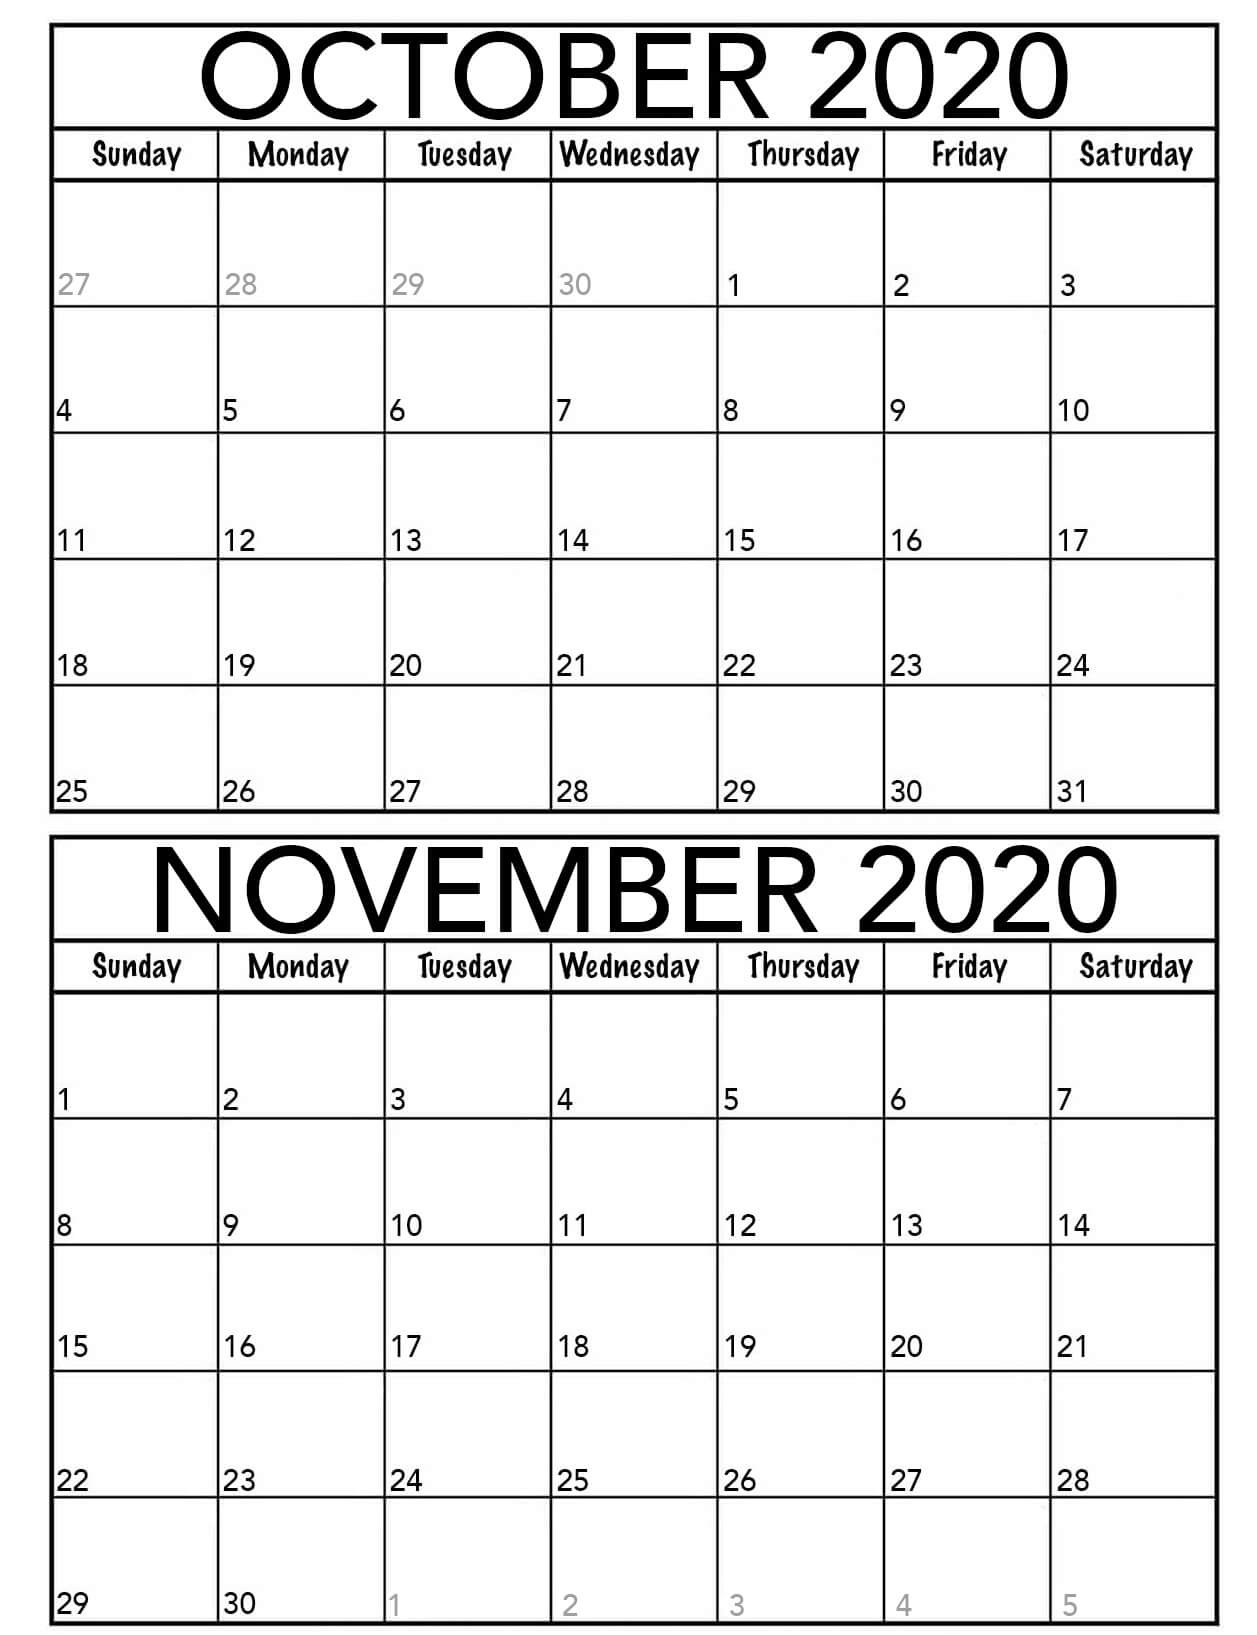 October 2020 To March 2021 Calendar Online | Free Printable Calendar Shop November 2020 - March 2021 Calendar